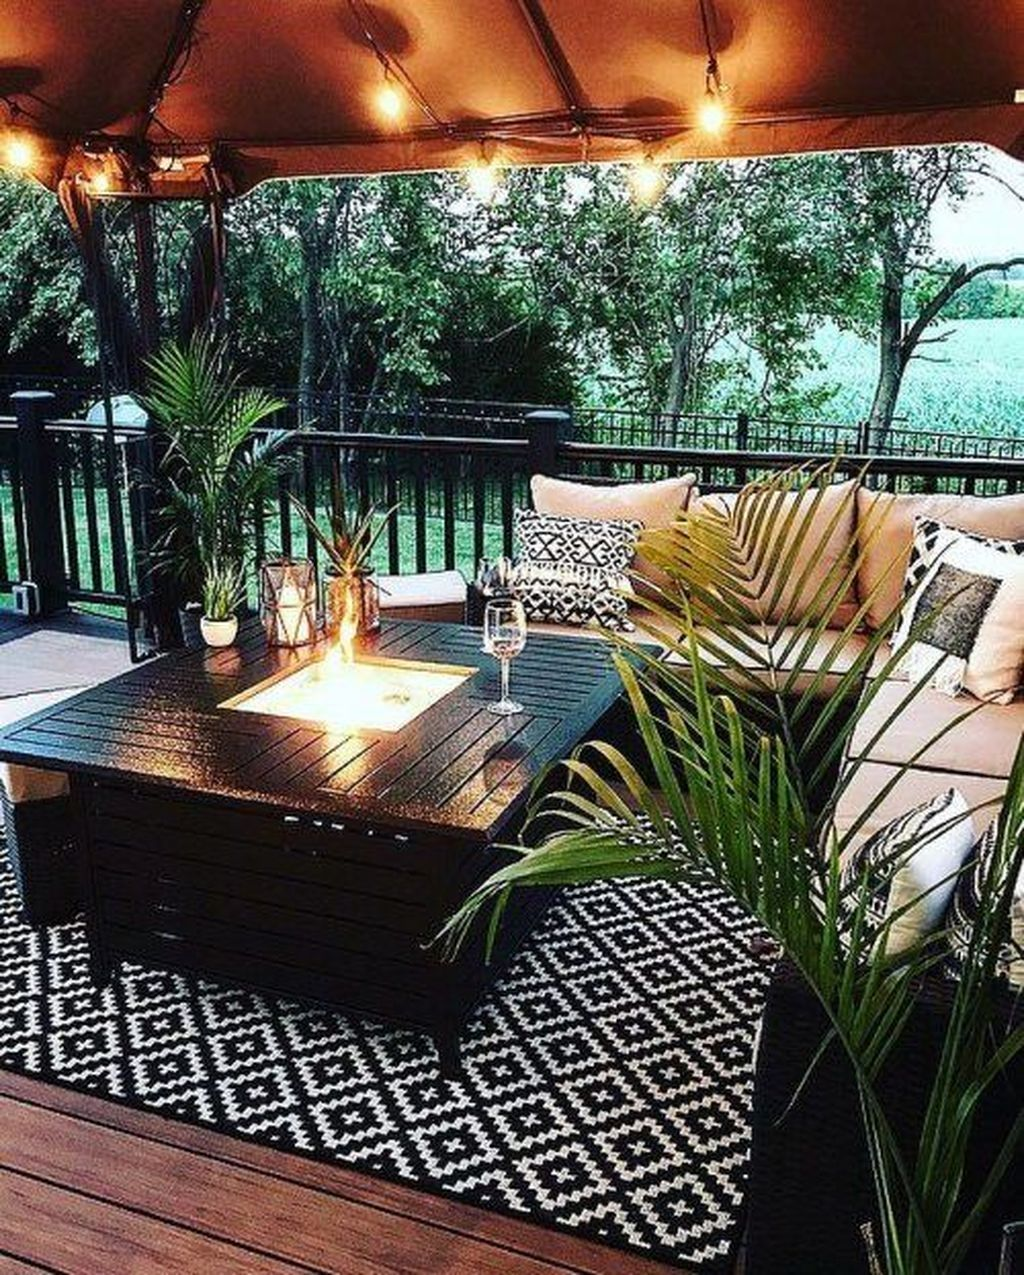 50 Amazing Decorative Outdoor Rugs Patio Ideas #outdoorpatiodecorating